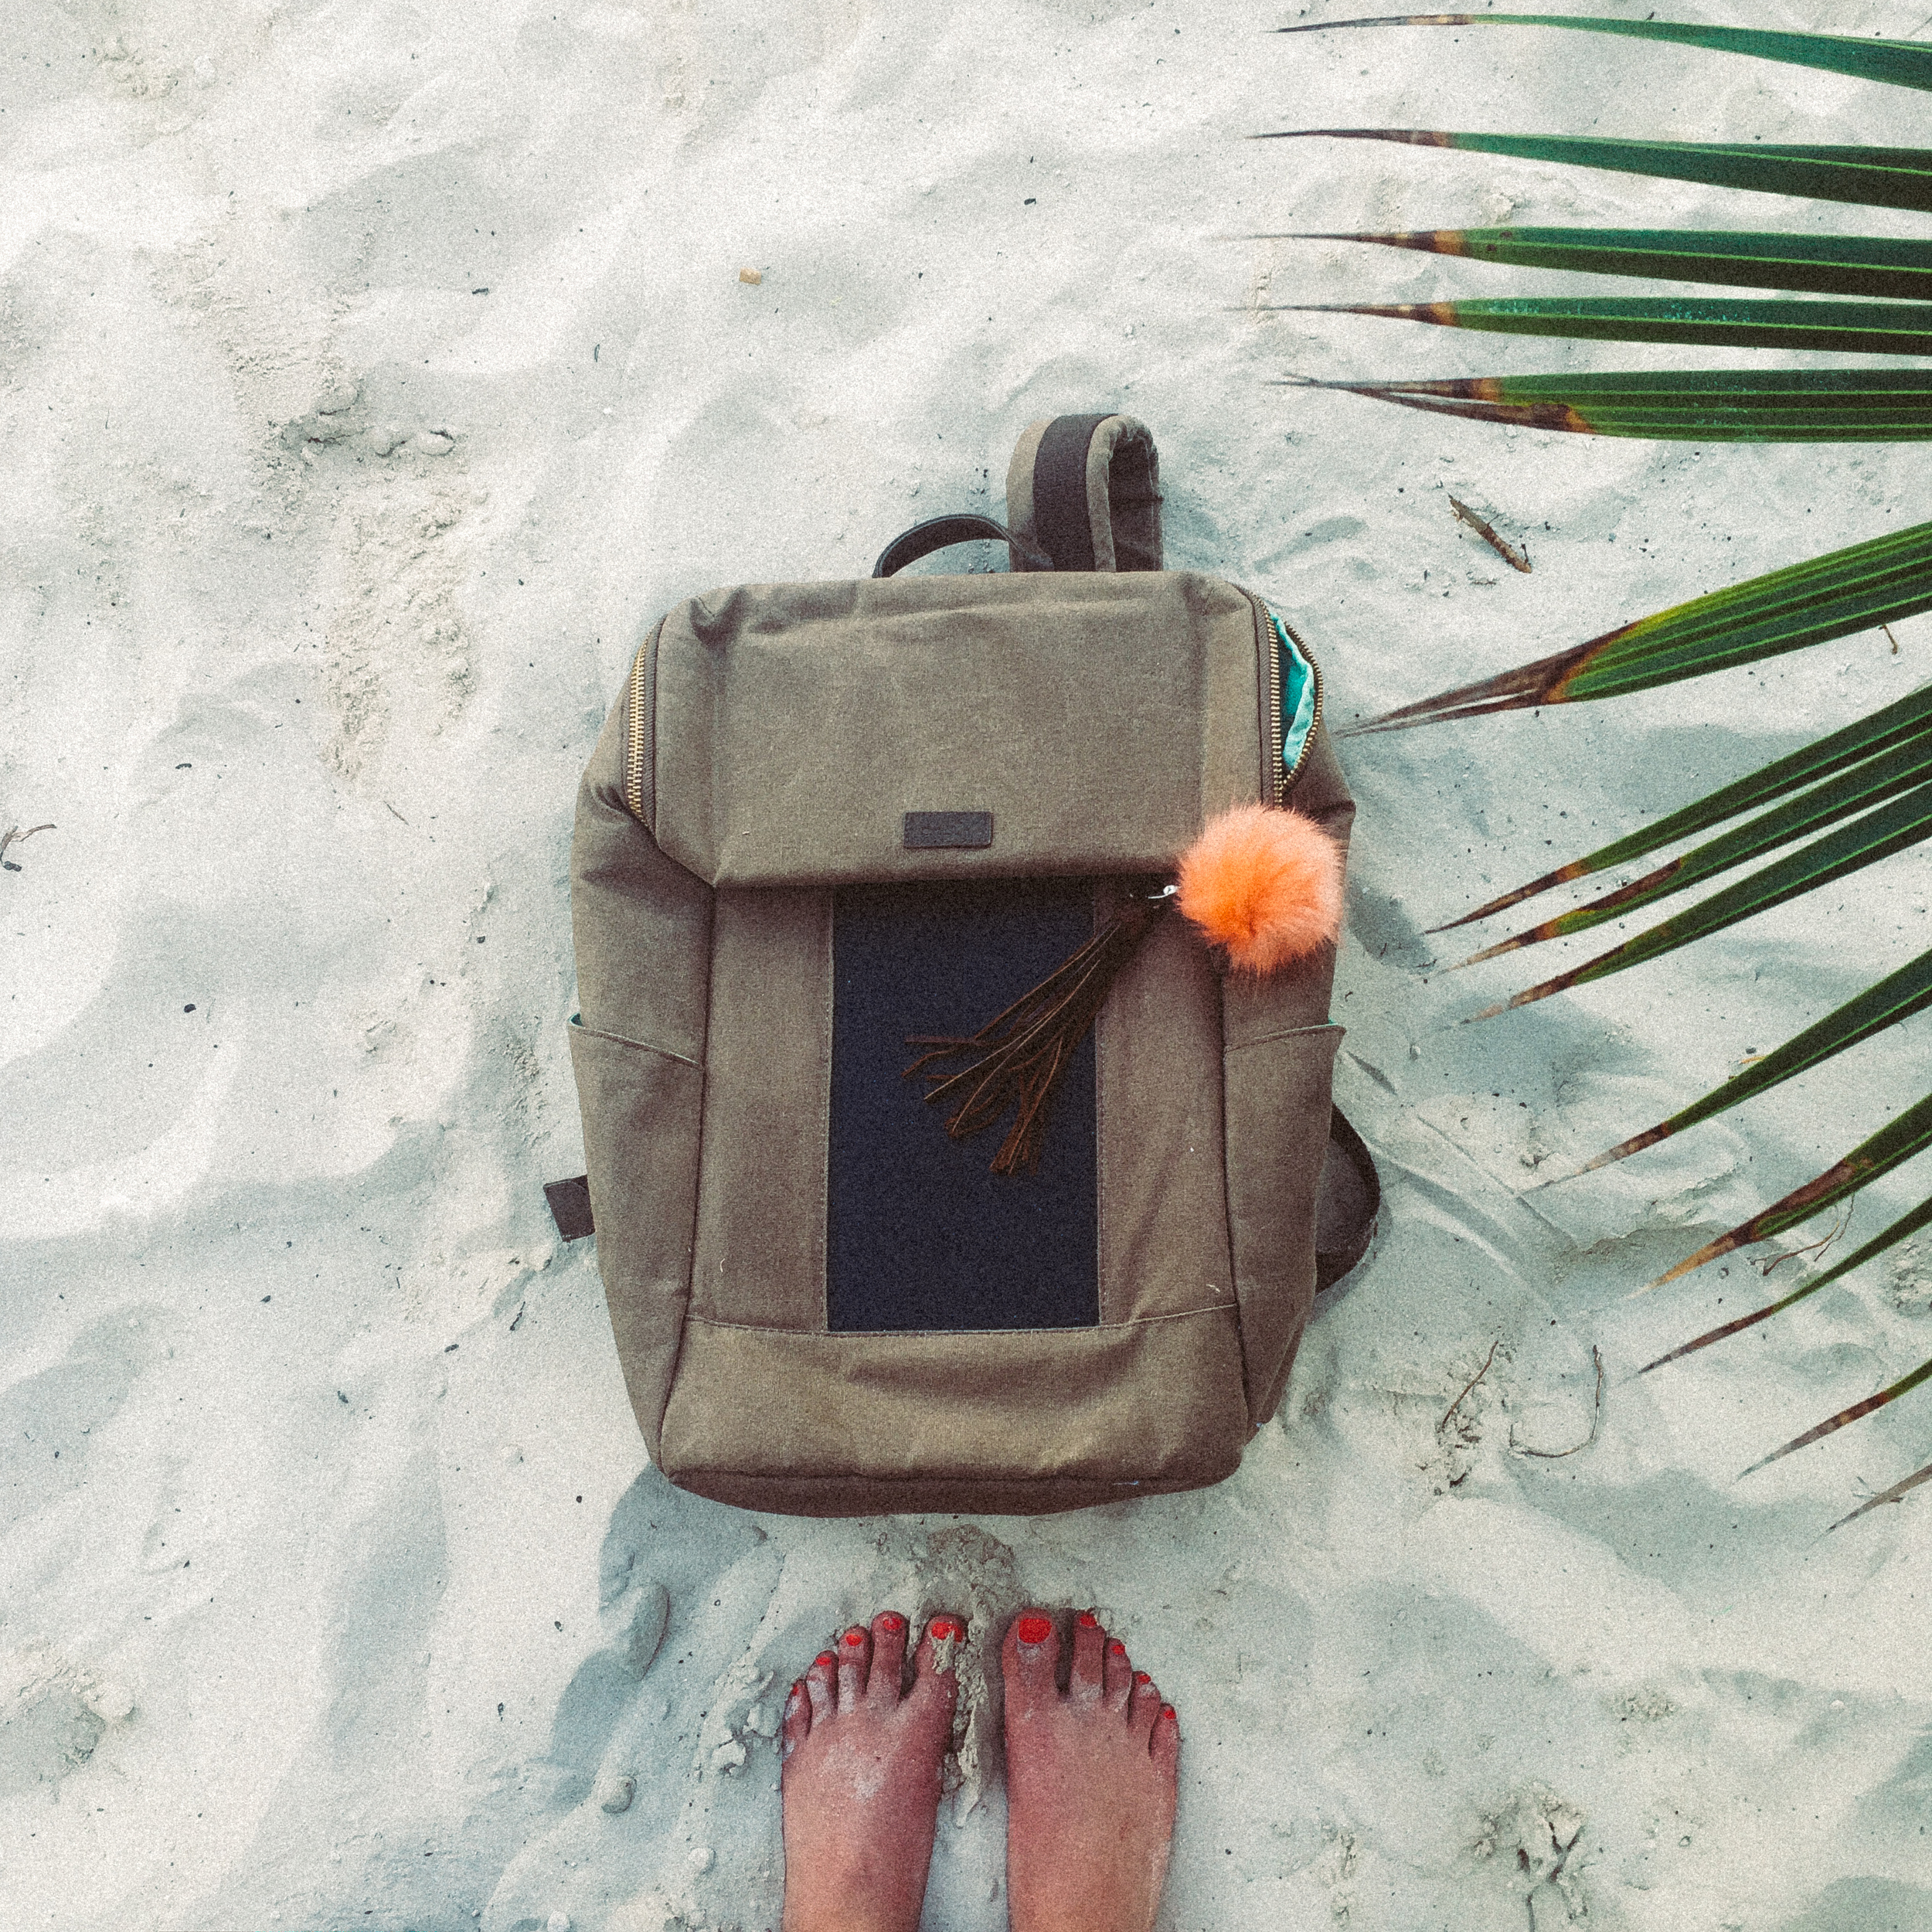 London - Tan Backpack   by BirkSun (Solar powered to charge phone!)